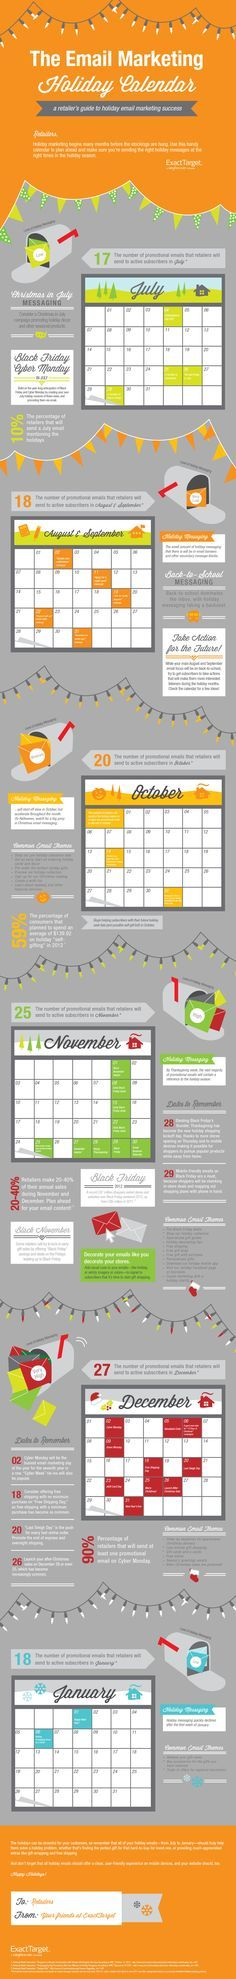 Best Marketing Calendar Images On   Marketing Calendar